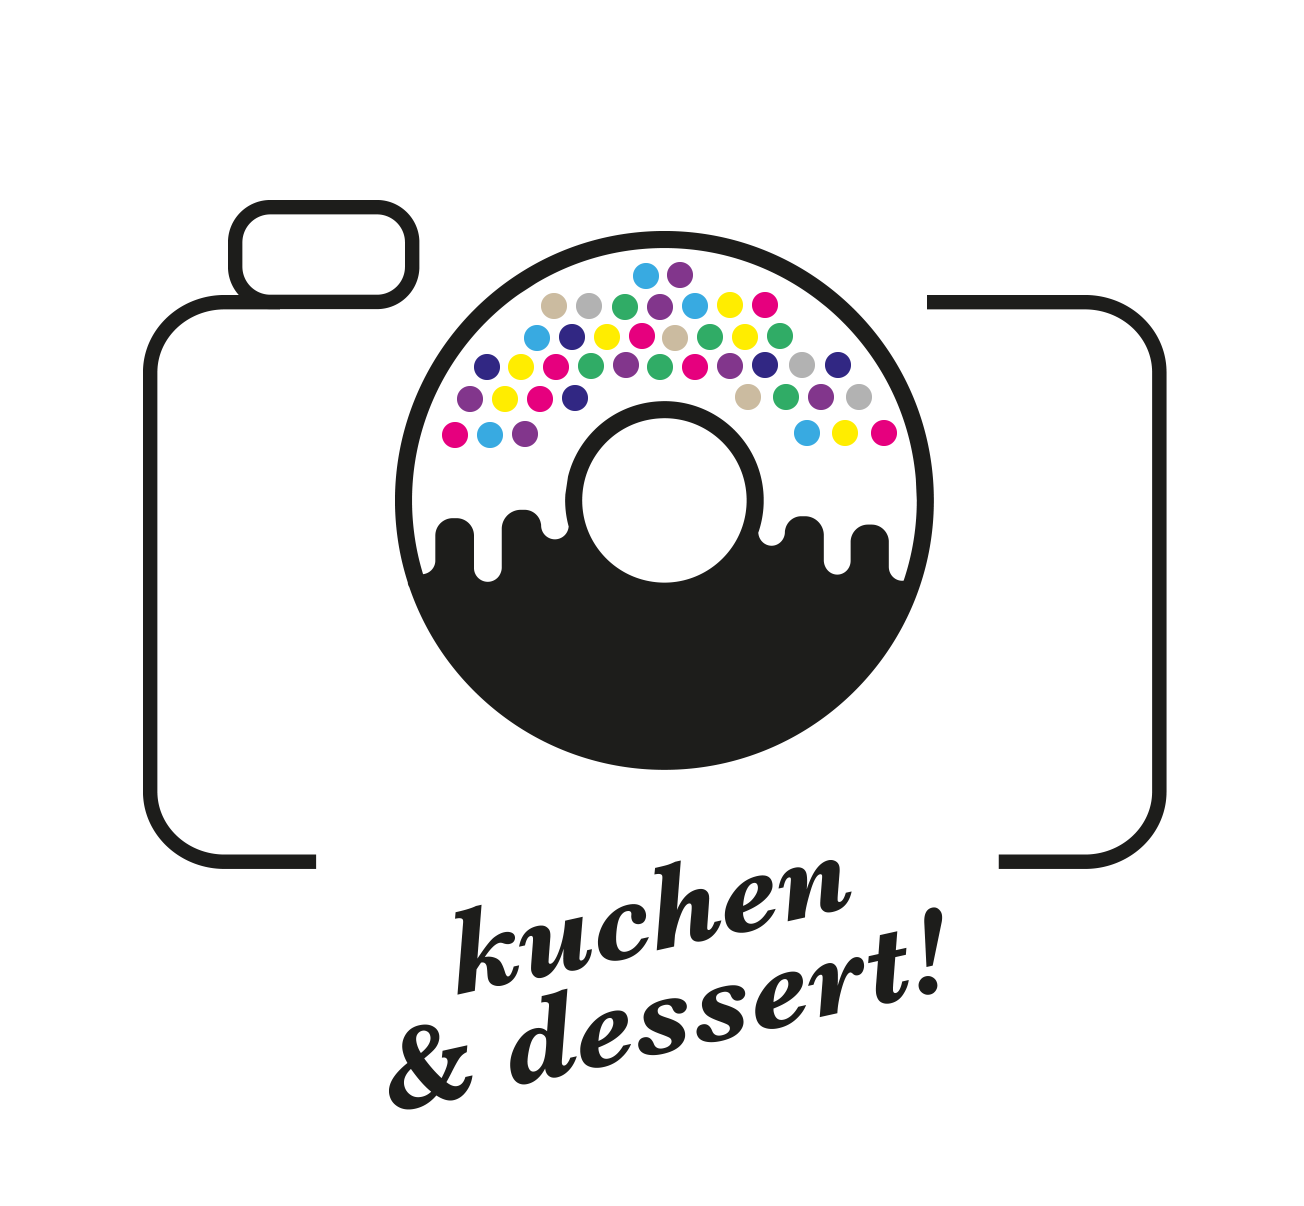 get_hungry_dessert_icon_schwarz.png